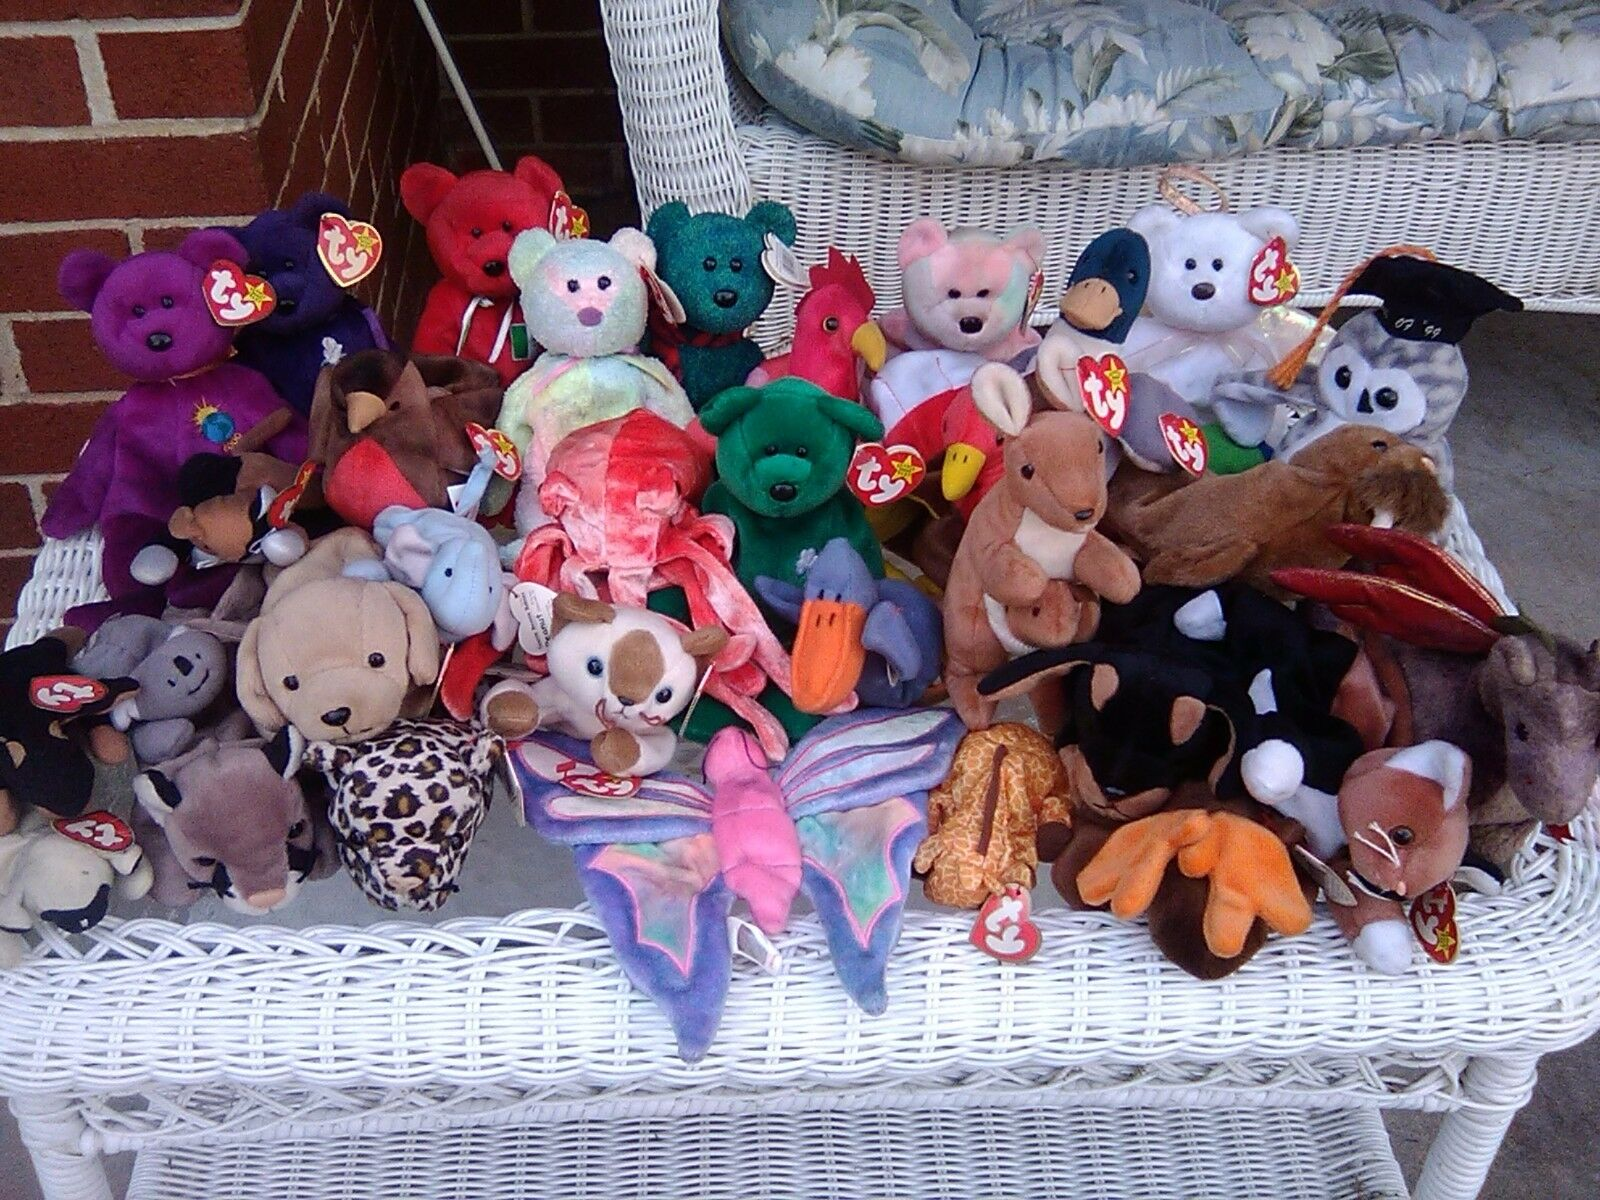 Lot of 33 TY 1997 beanie babies including Wiggly the octopus, Princess Diana